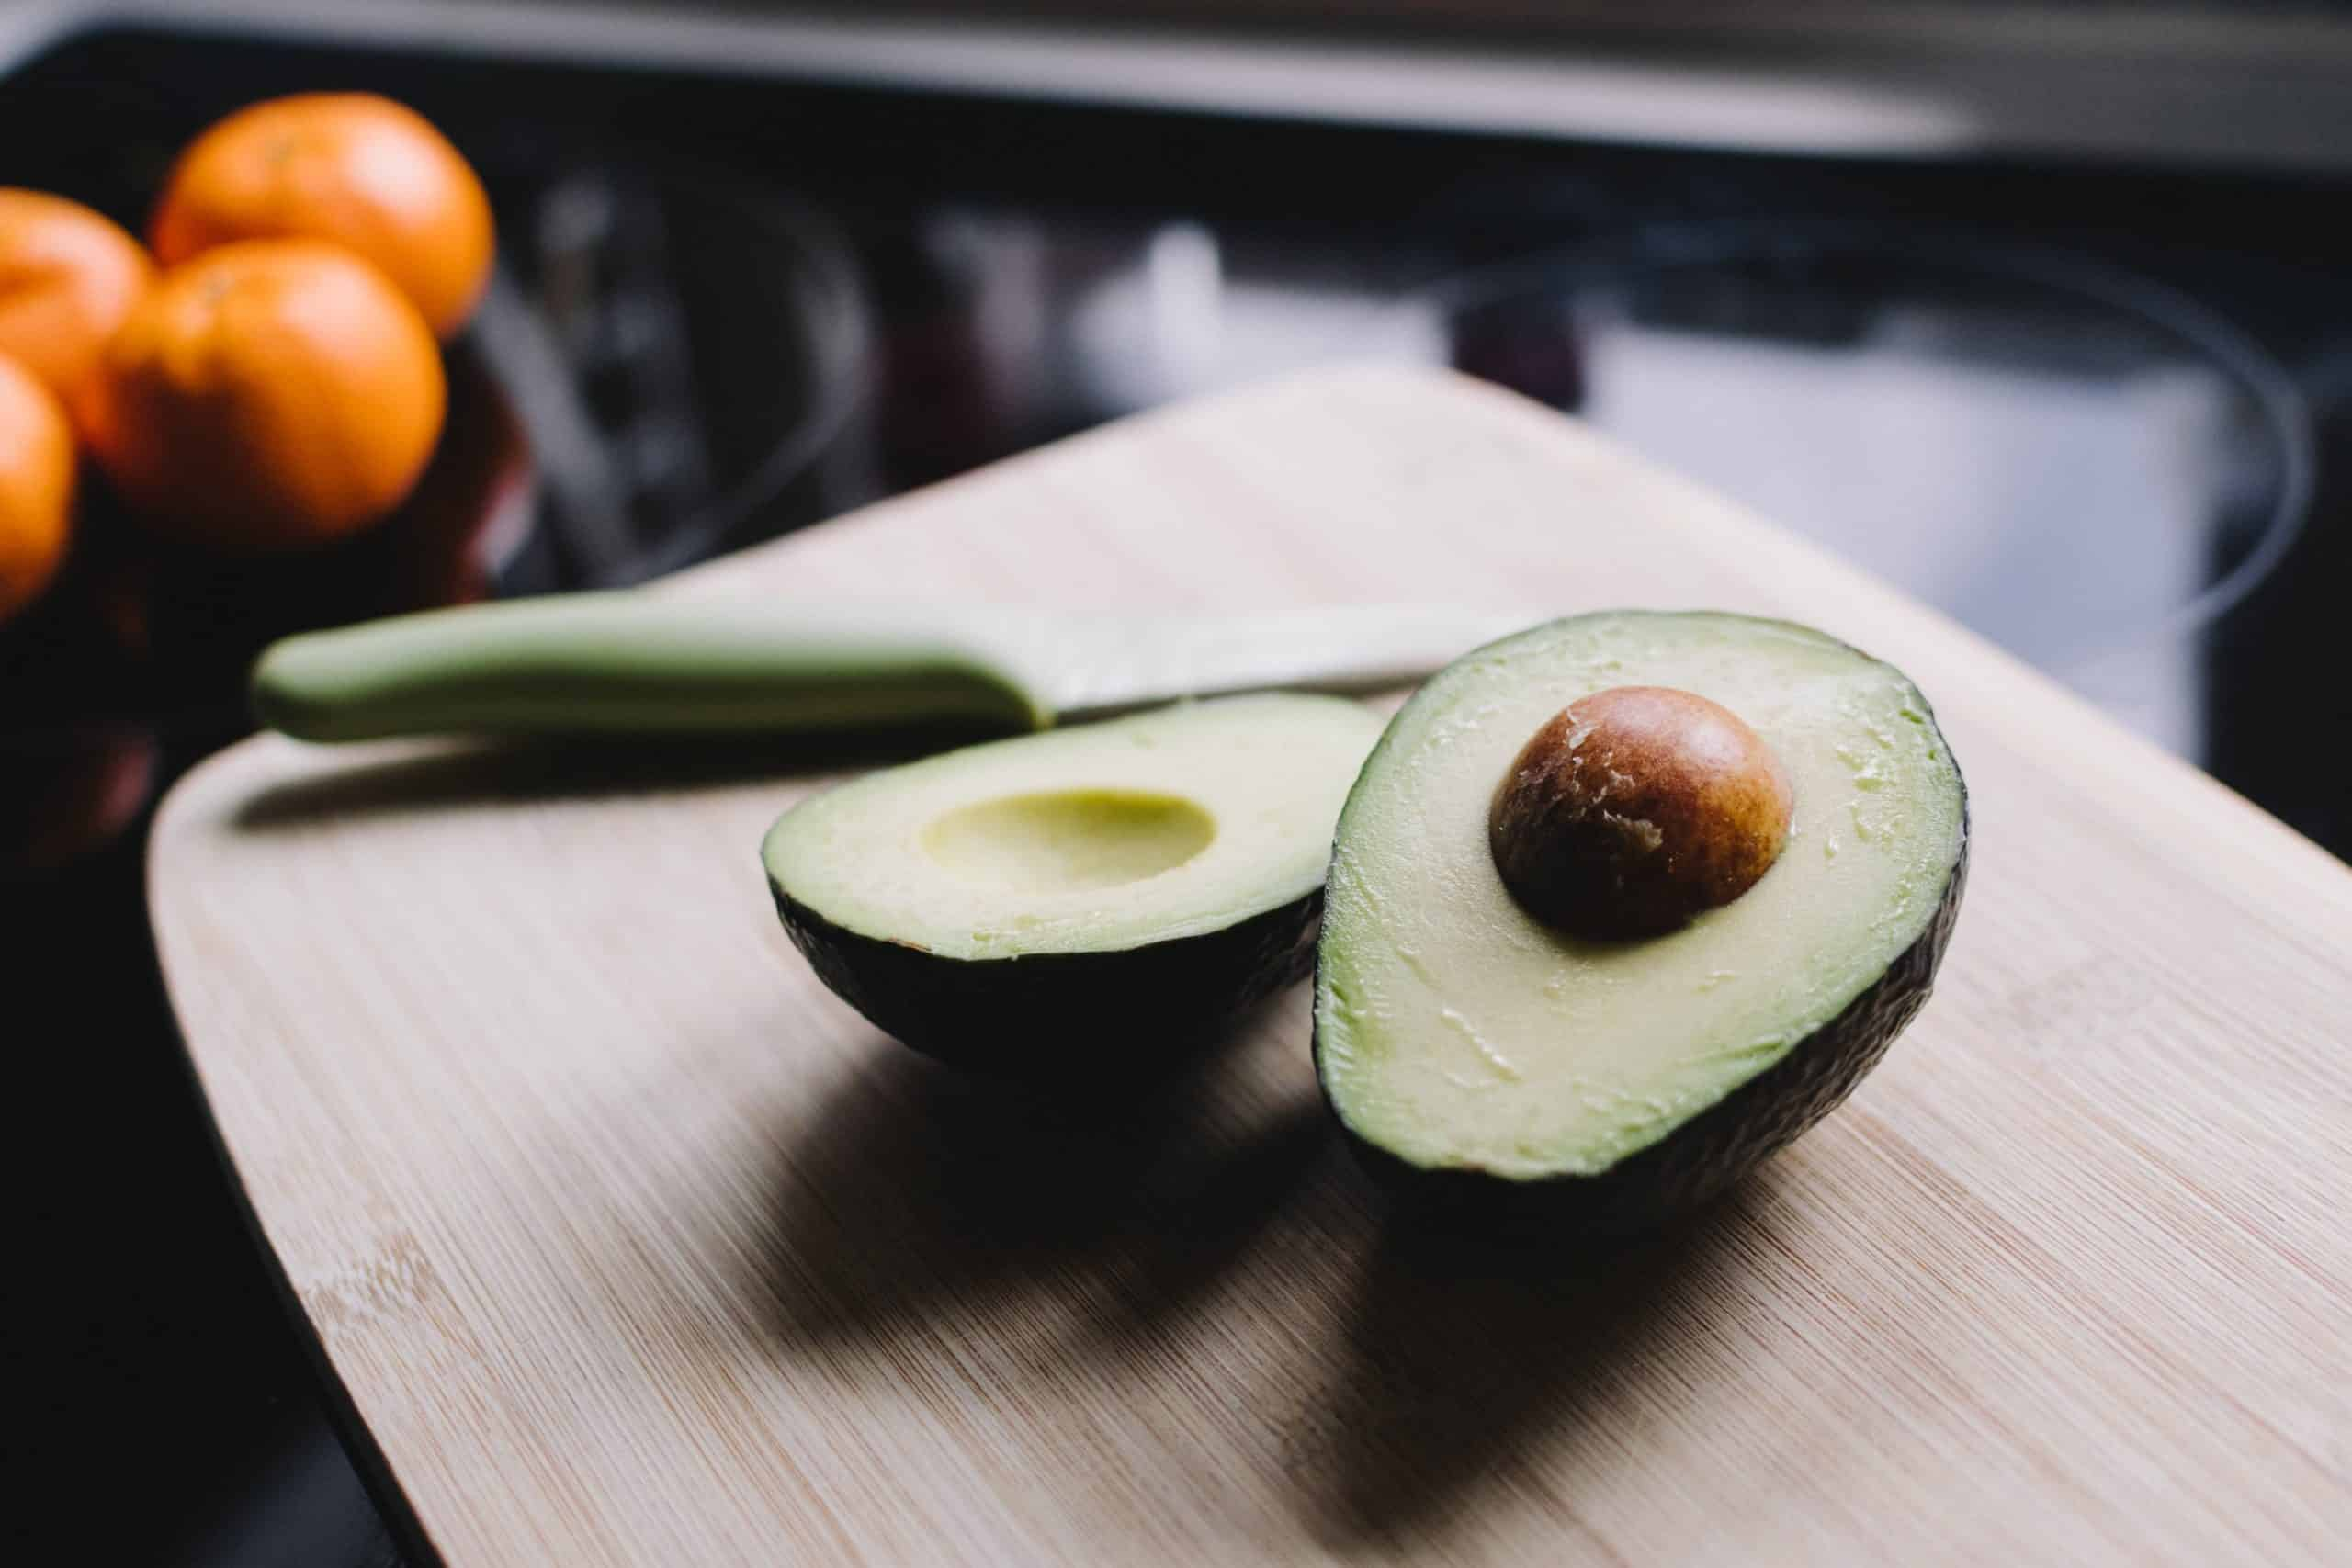 Nutritional Facts And Proven Health Benefits Of Avocados